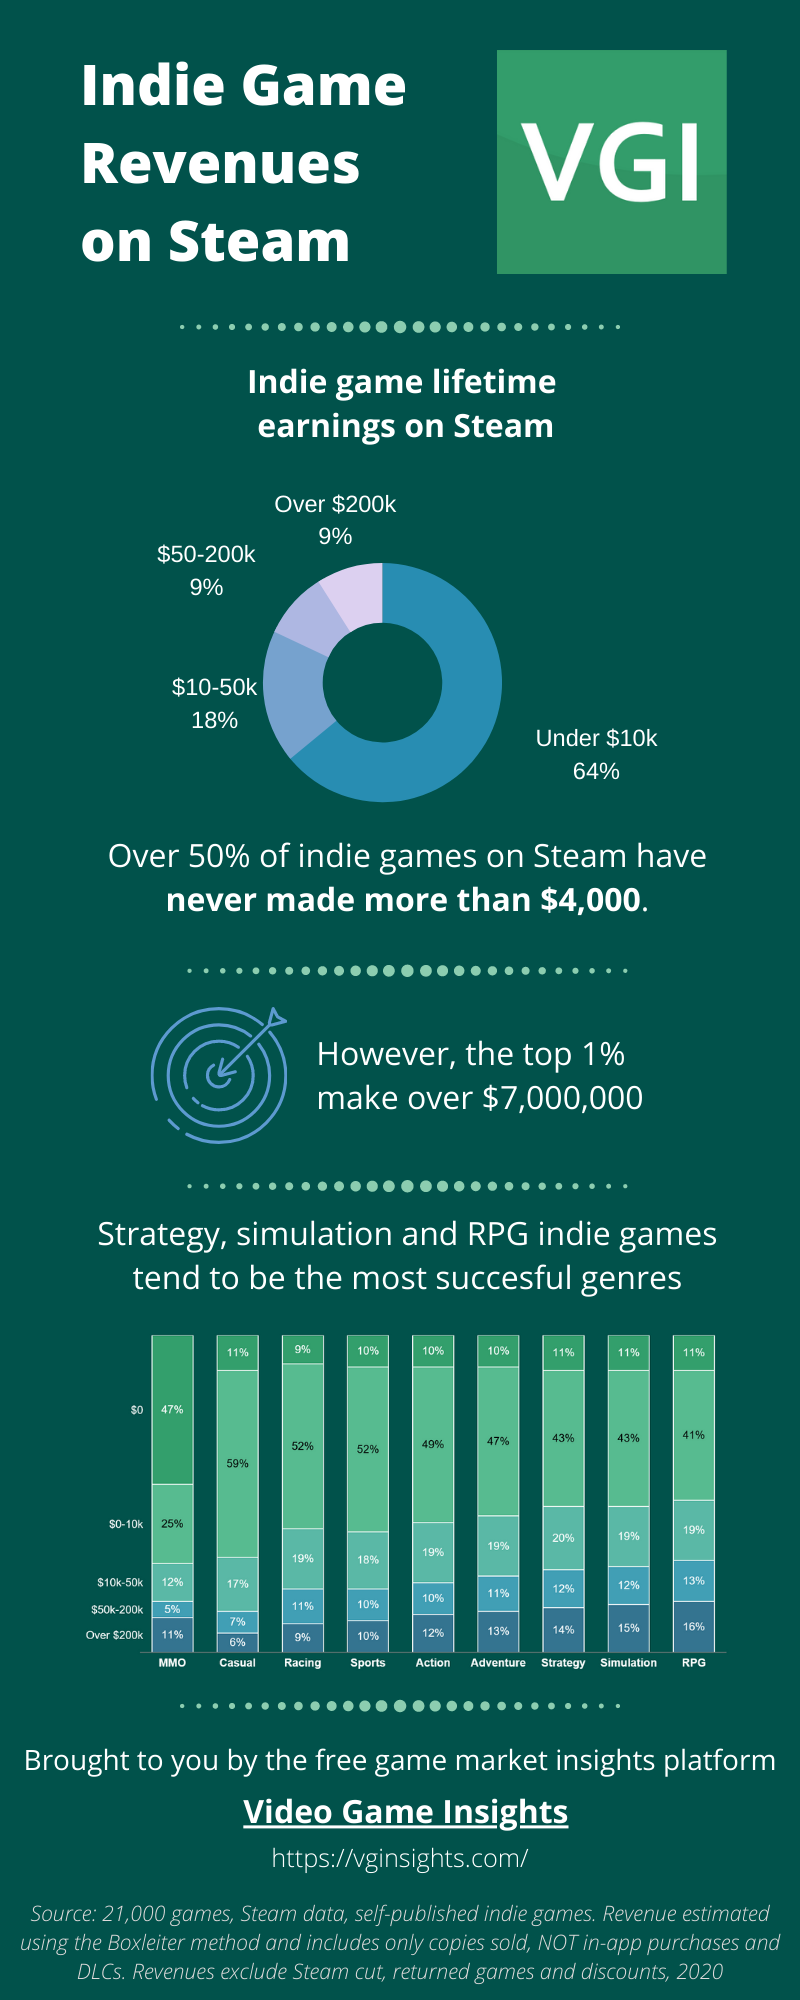 Video Game Insights - Indie game revenues on Steam, including genre lifetime earnings and genre splits.